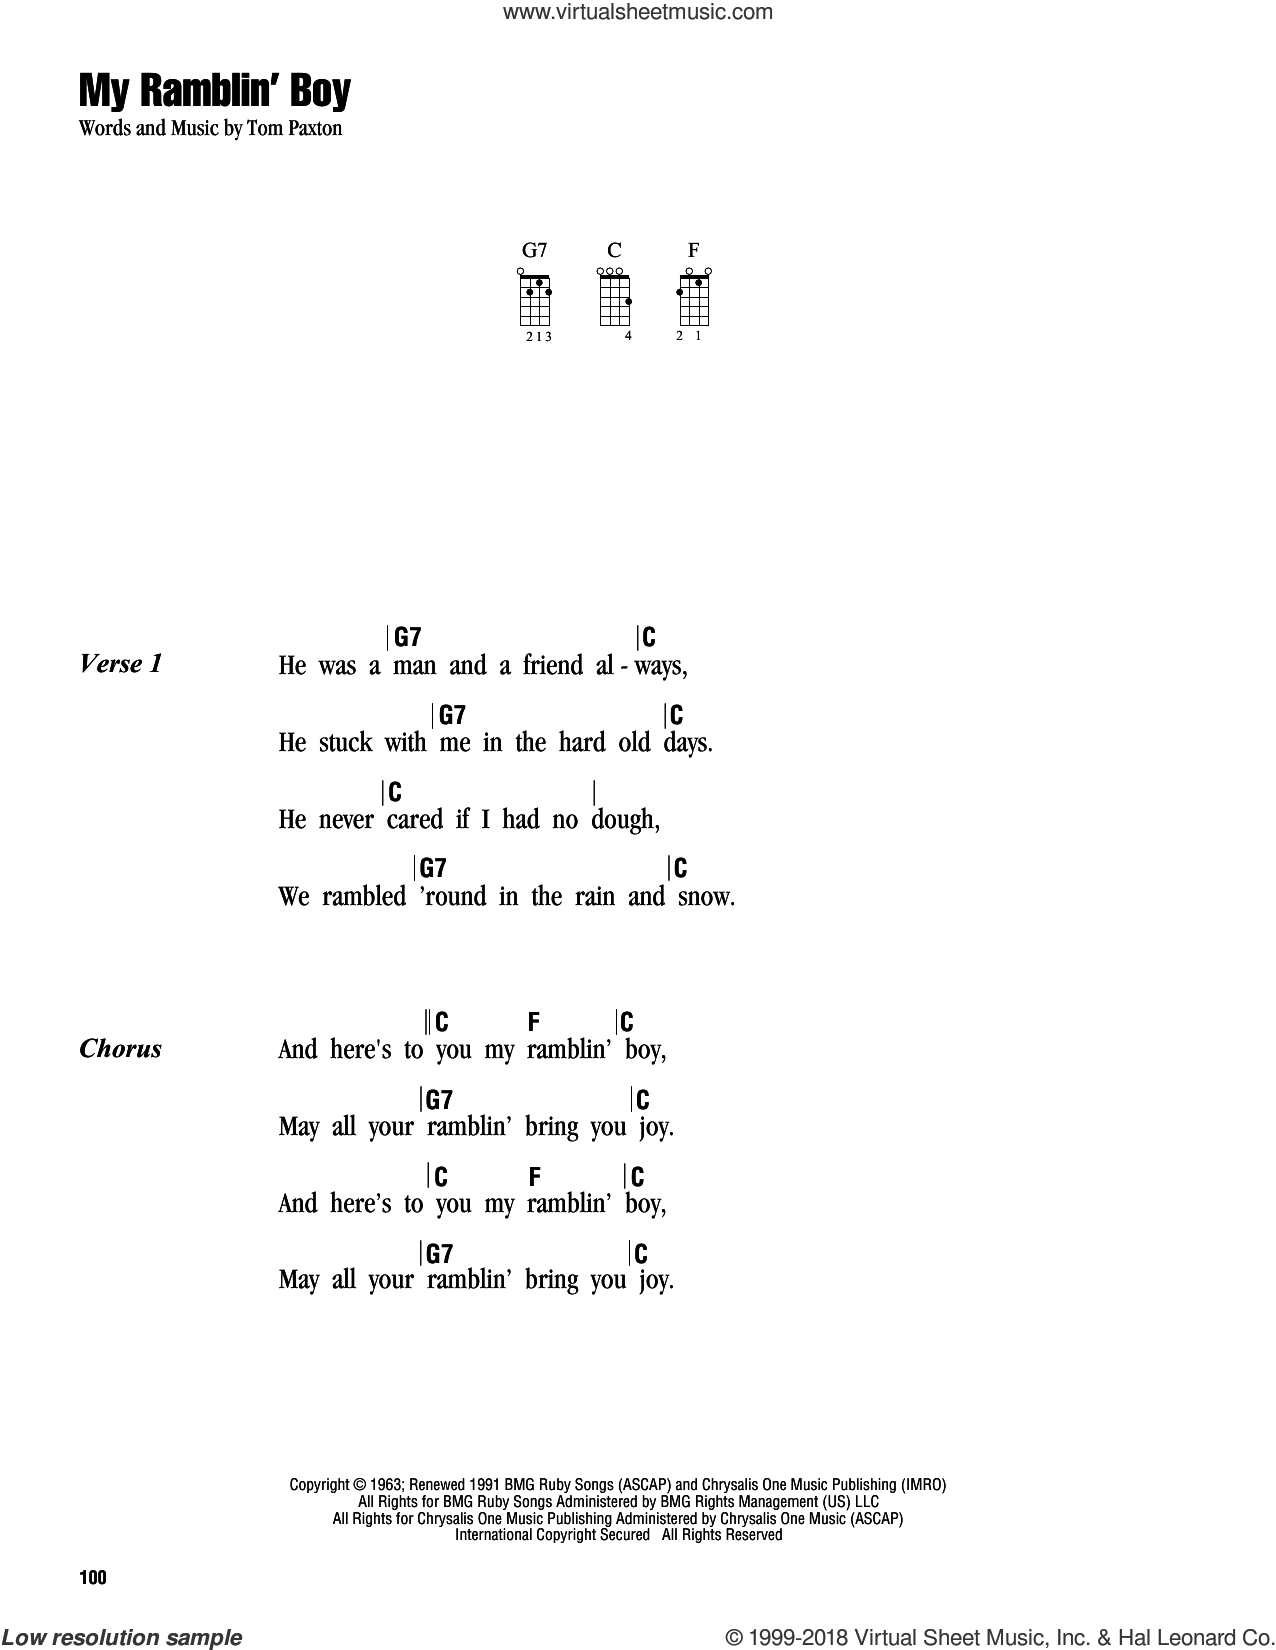 My Ramblin' Boy sheet music for ukulele (chords) by Tom Paxton. Score Image Preview.